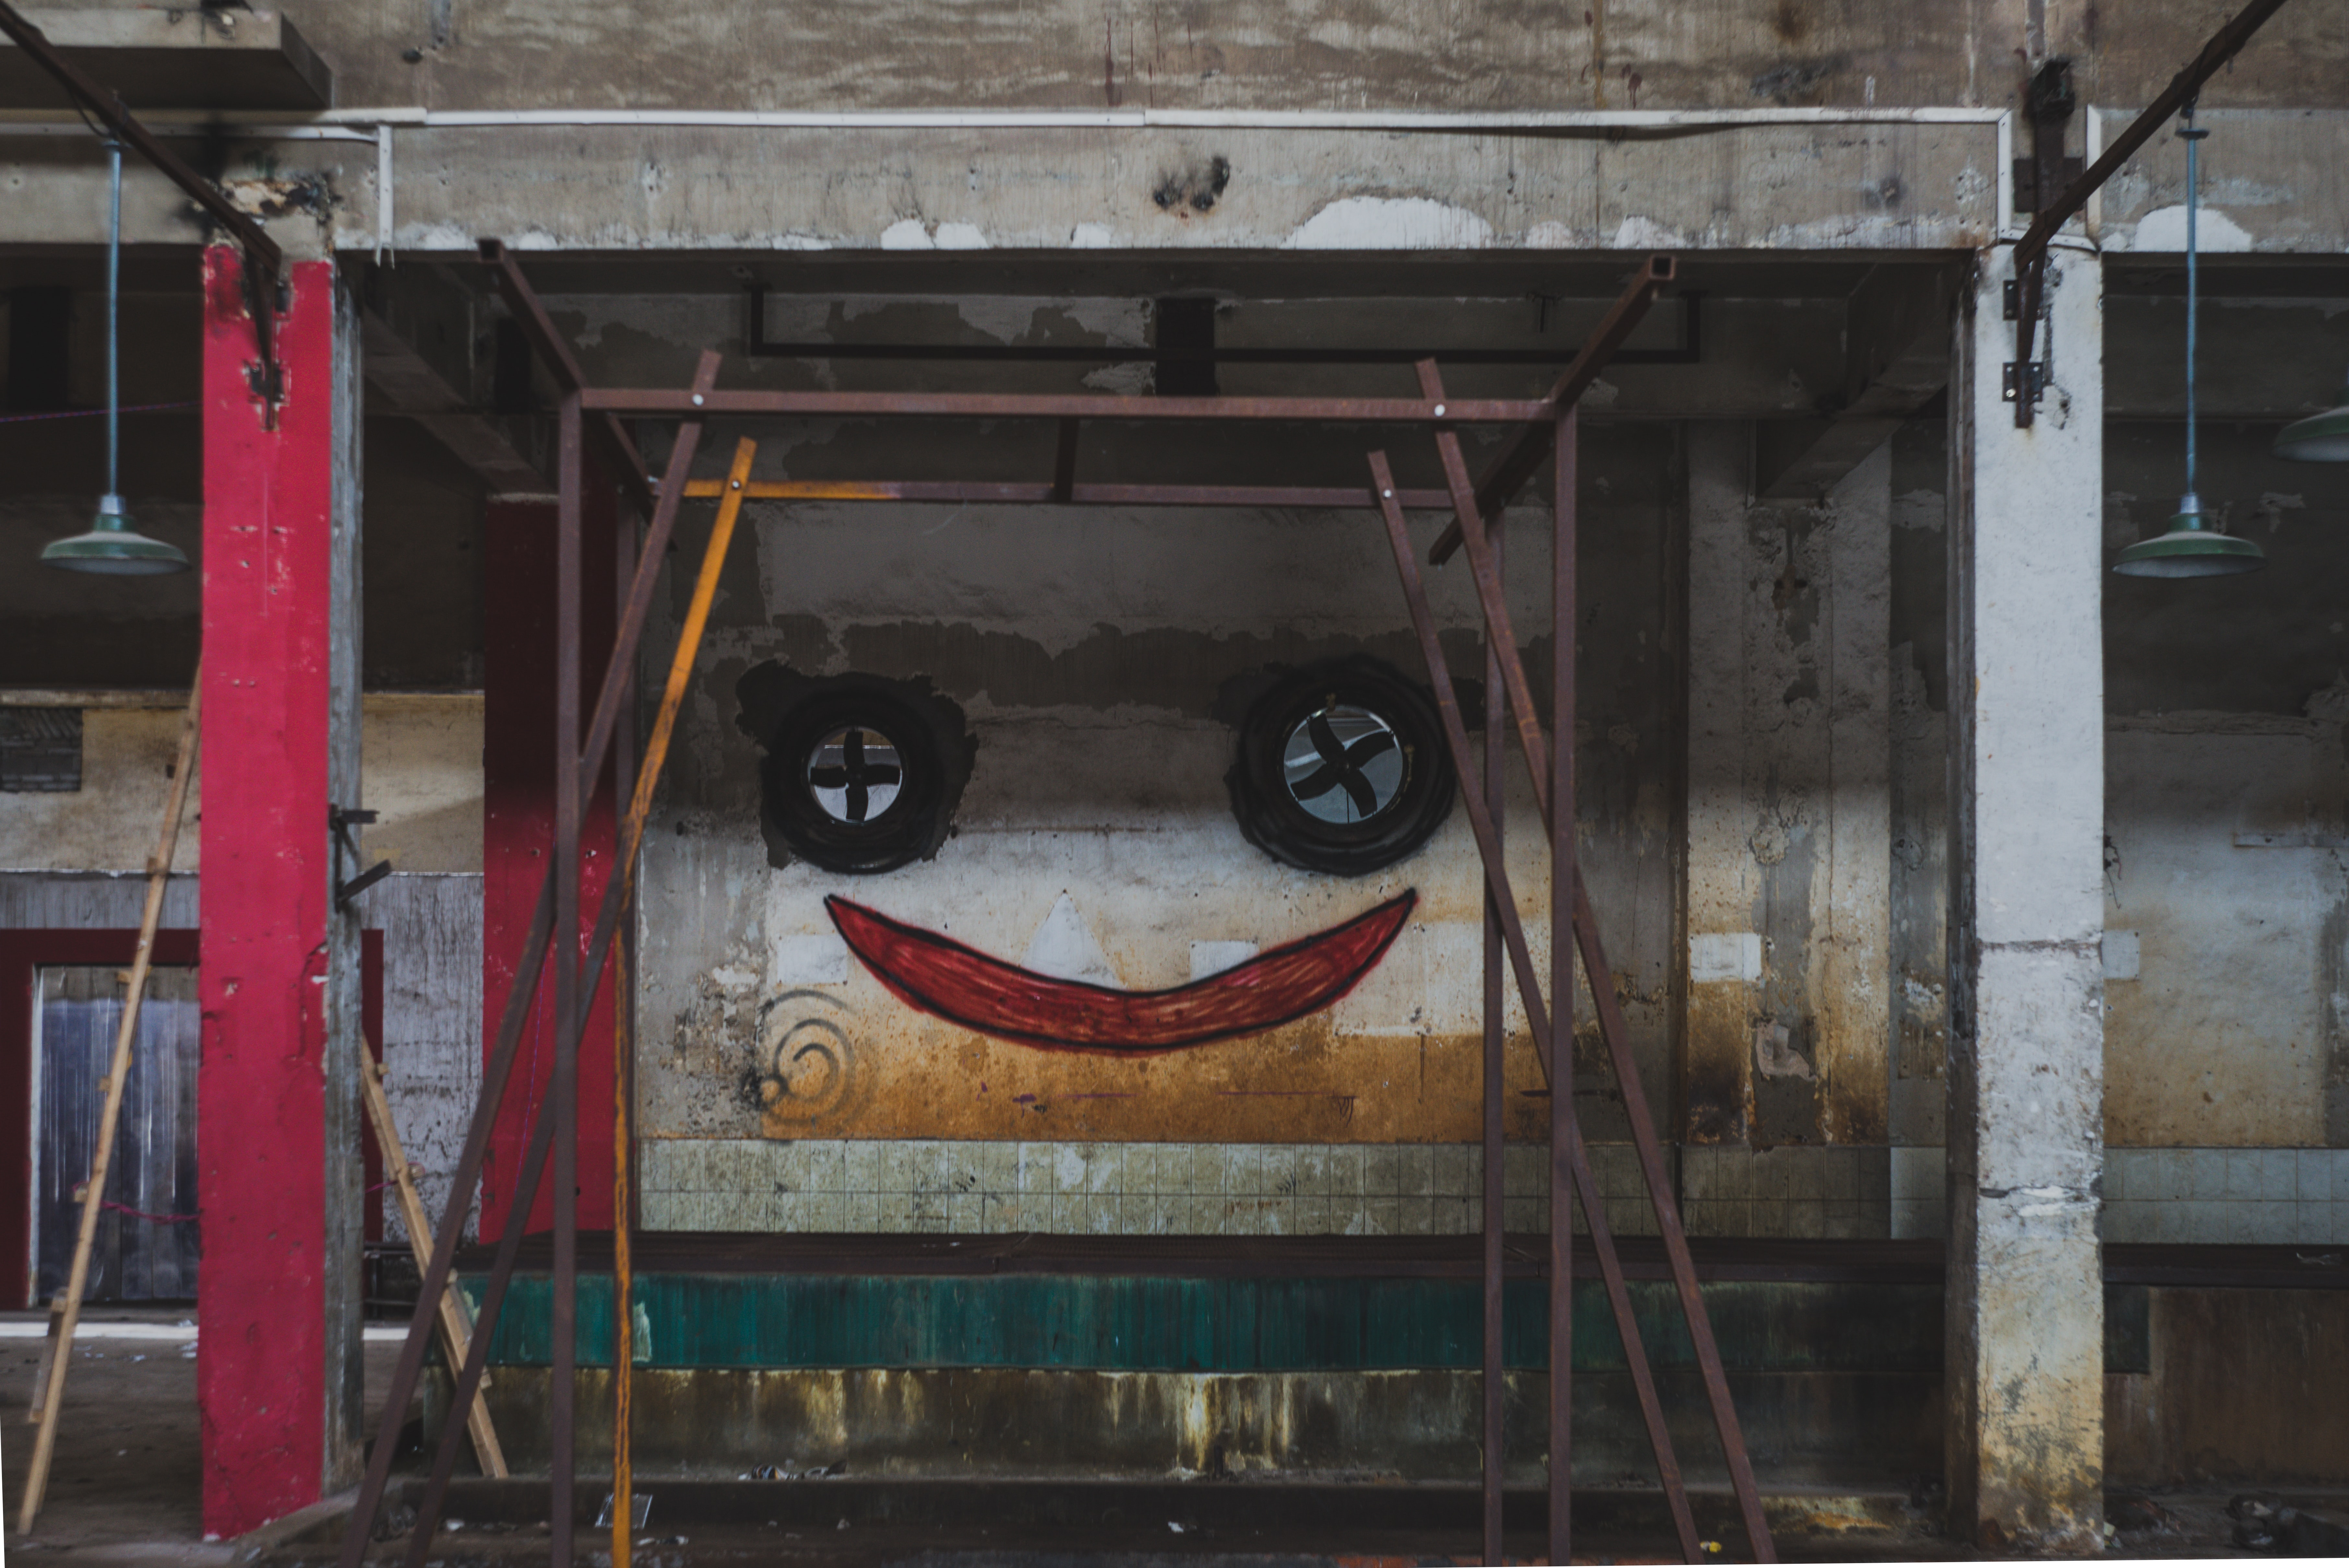 A happy face graffiti painted onto a wall.